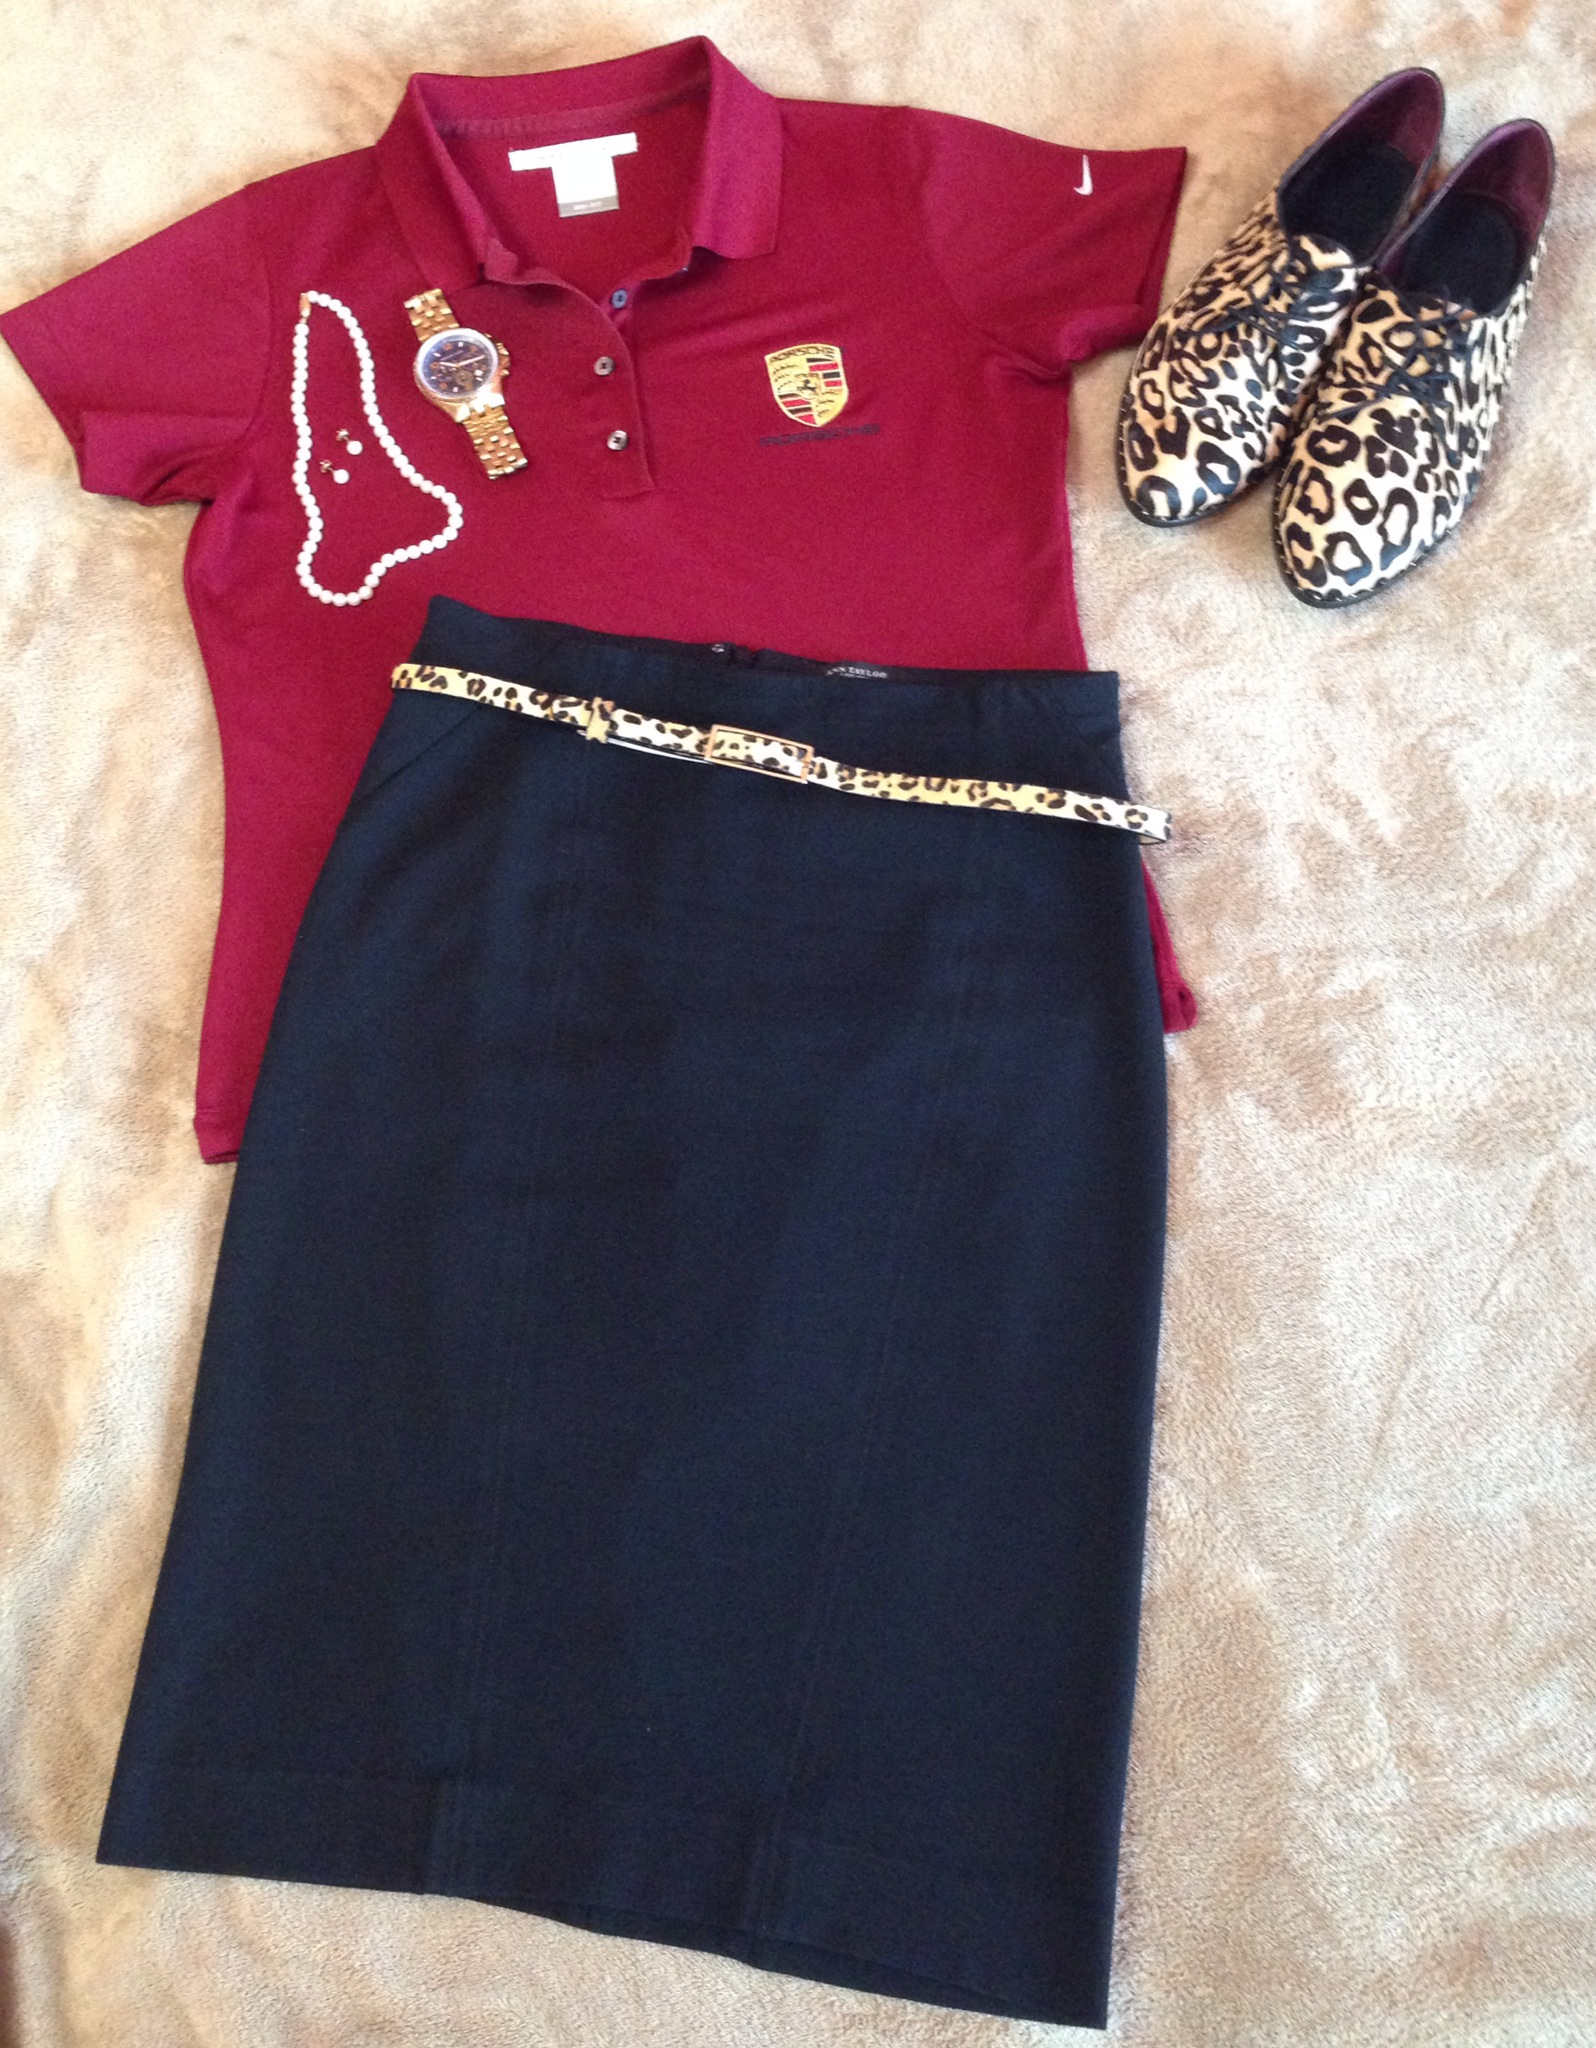 Skirt: Ann Taylor / Shoes: Report Tahoe2 (Zappos.com) / Belt: I don't remember, sorry! / Watch: Michael Kors